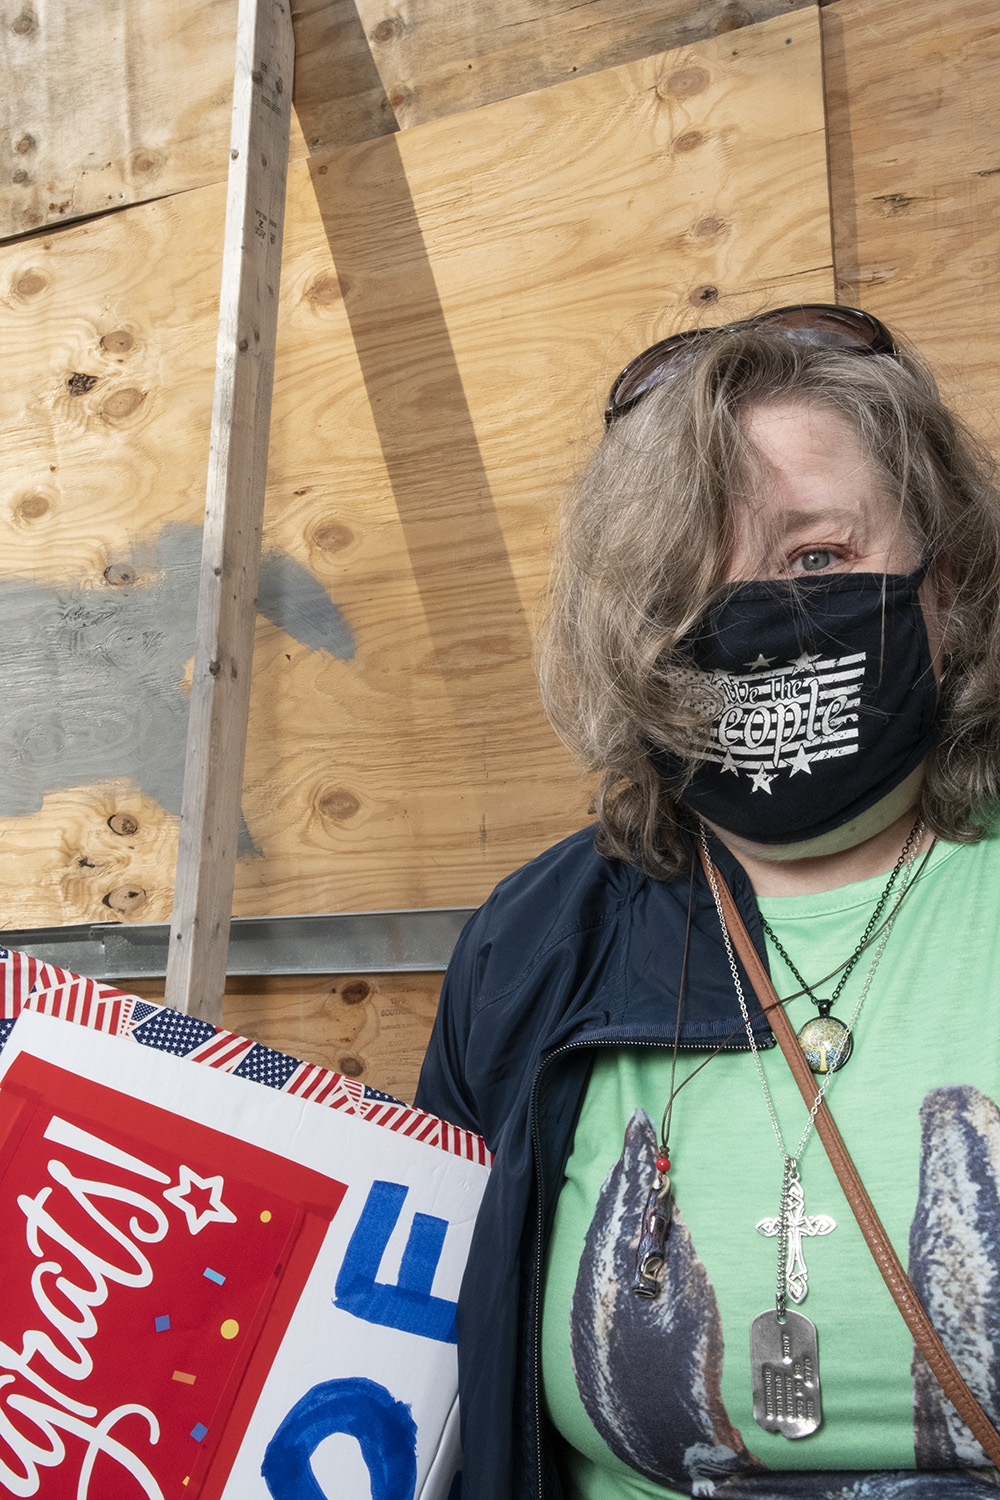 A white woman with blonde shoulder length hair, wearing a green shirt, blue jacket, a black mask, and a pair of dog tags stands in front of a chipboard barrier.